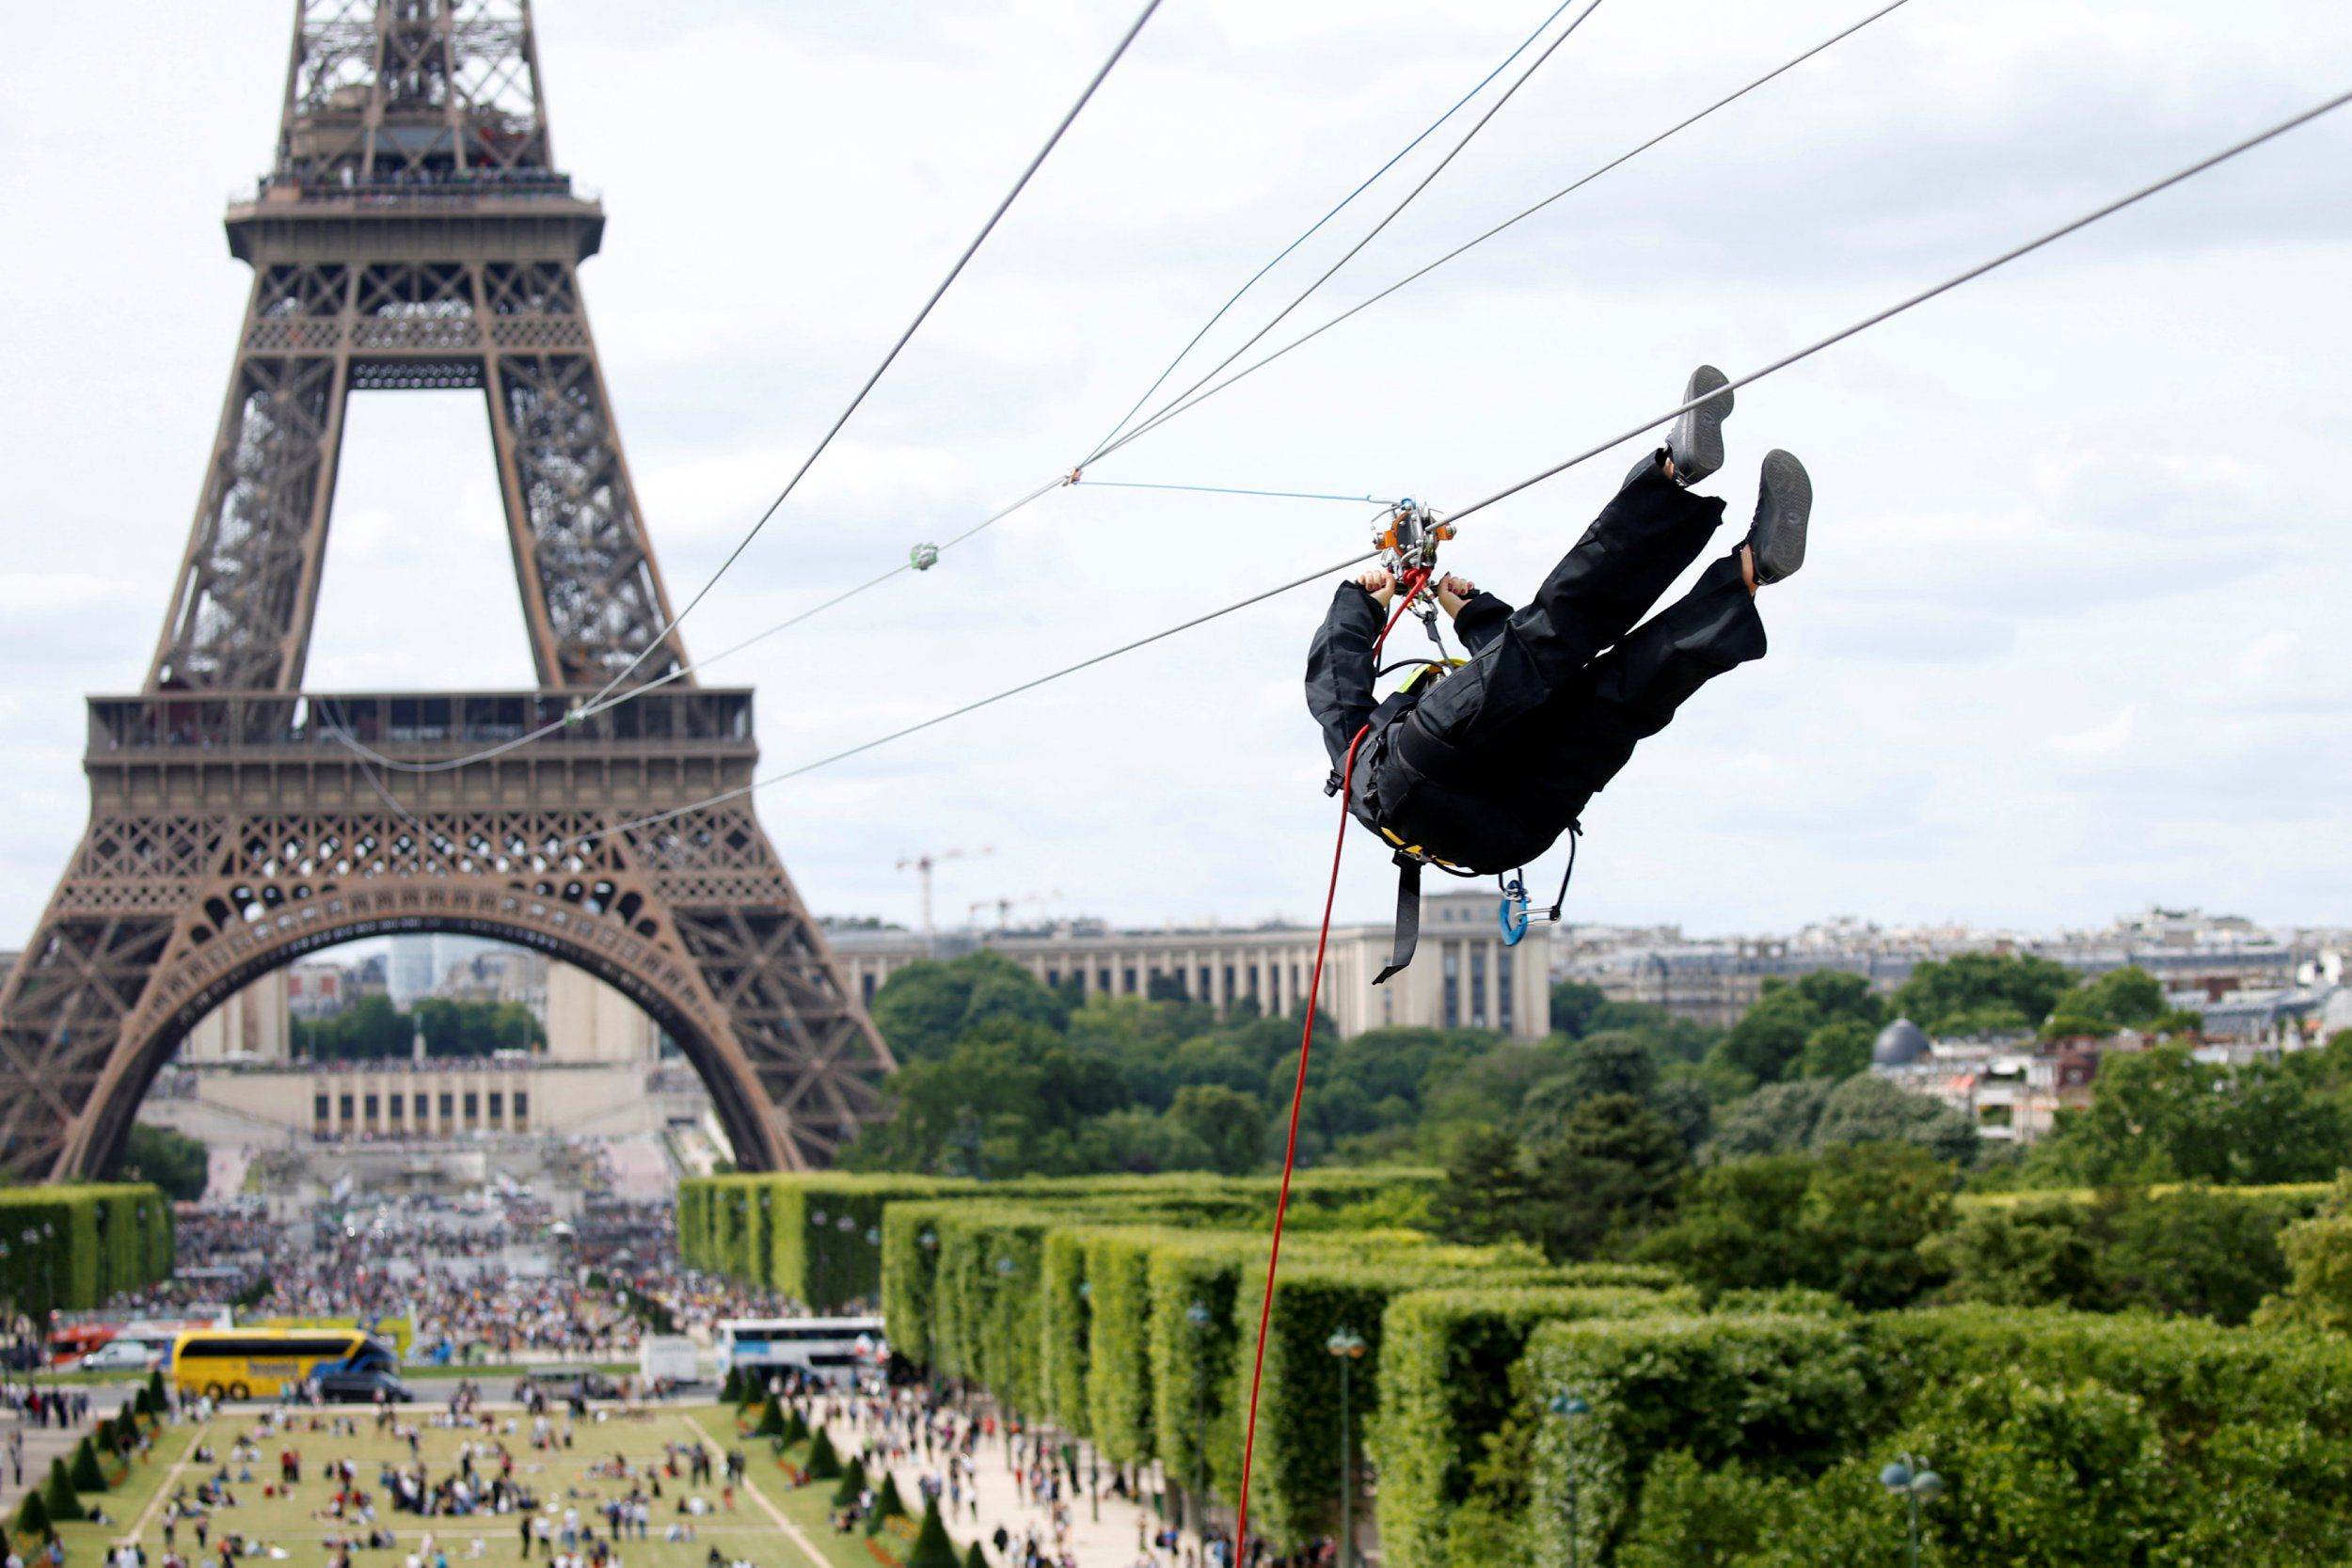 For the real dare devils: you can now zip line off the Eiffel Tower ...